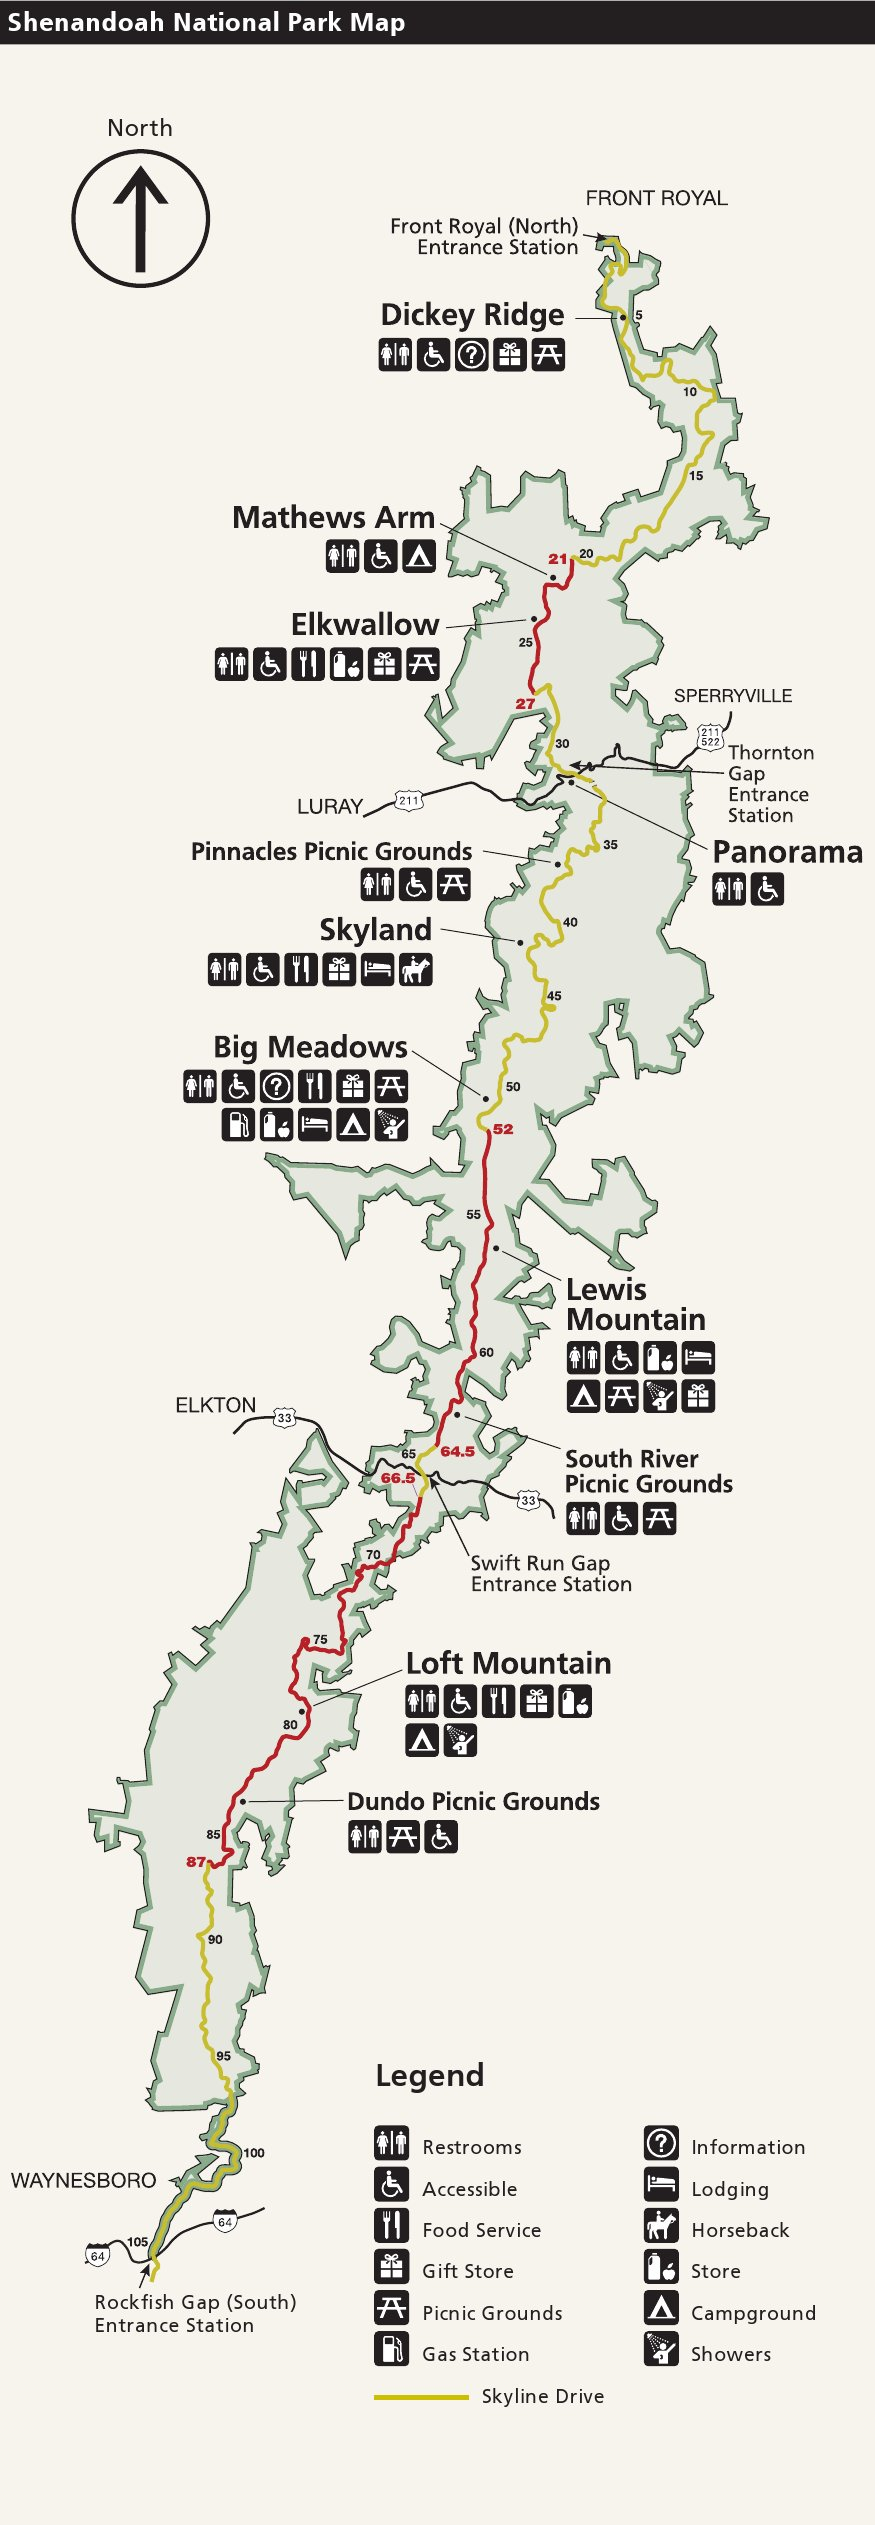 Shenandoah Maps | NPMaps.com - just free maps, period. on columbia river gorge national scenic area map, cowans gap state park map, shenandoah valley map, the catskill mountains map, denali national park and preserve map, new river state park trail map, harpers ferry hiking trail map, sleeping bear dunes national lakeshore map, pine grove furnace state park map, redwood national and state parks map, virginia map, yosemite national park trail map, shenandoah river map, poinsett state park map, sequoia national park map, skyline drive map, kings canyon national park map, george washington national forest map, katmai national park and preserve map, cuyahoga valley national park map,